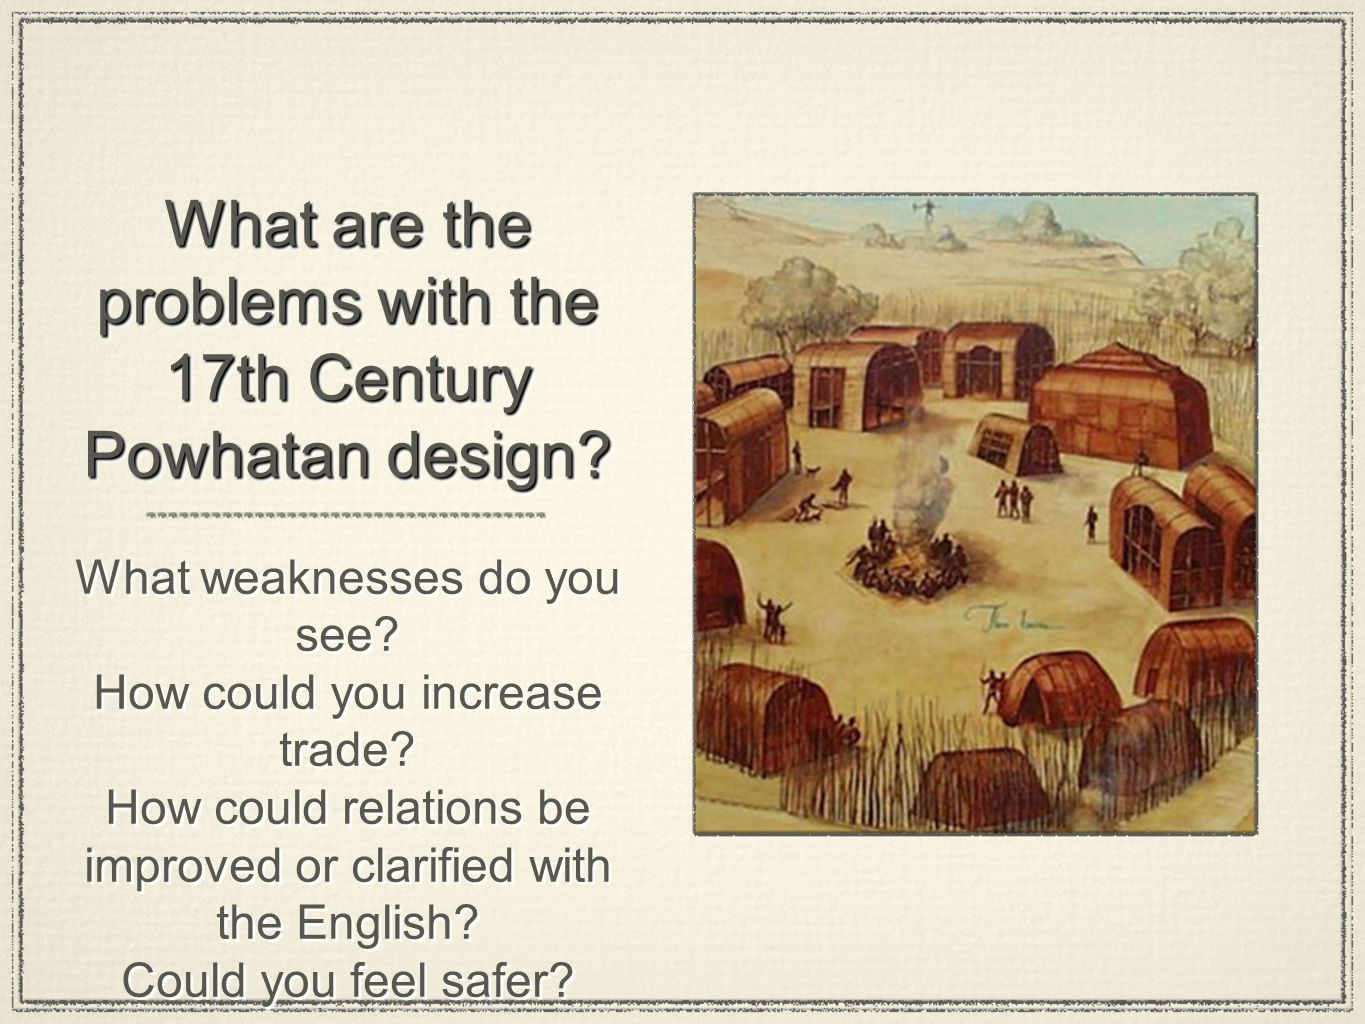 What are the problems with the 17th Century Powhatan design